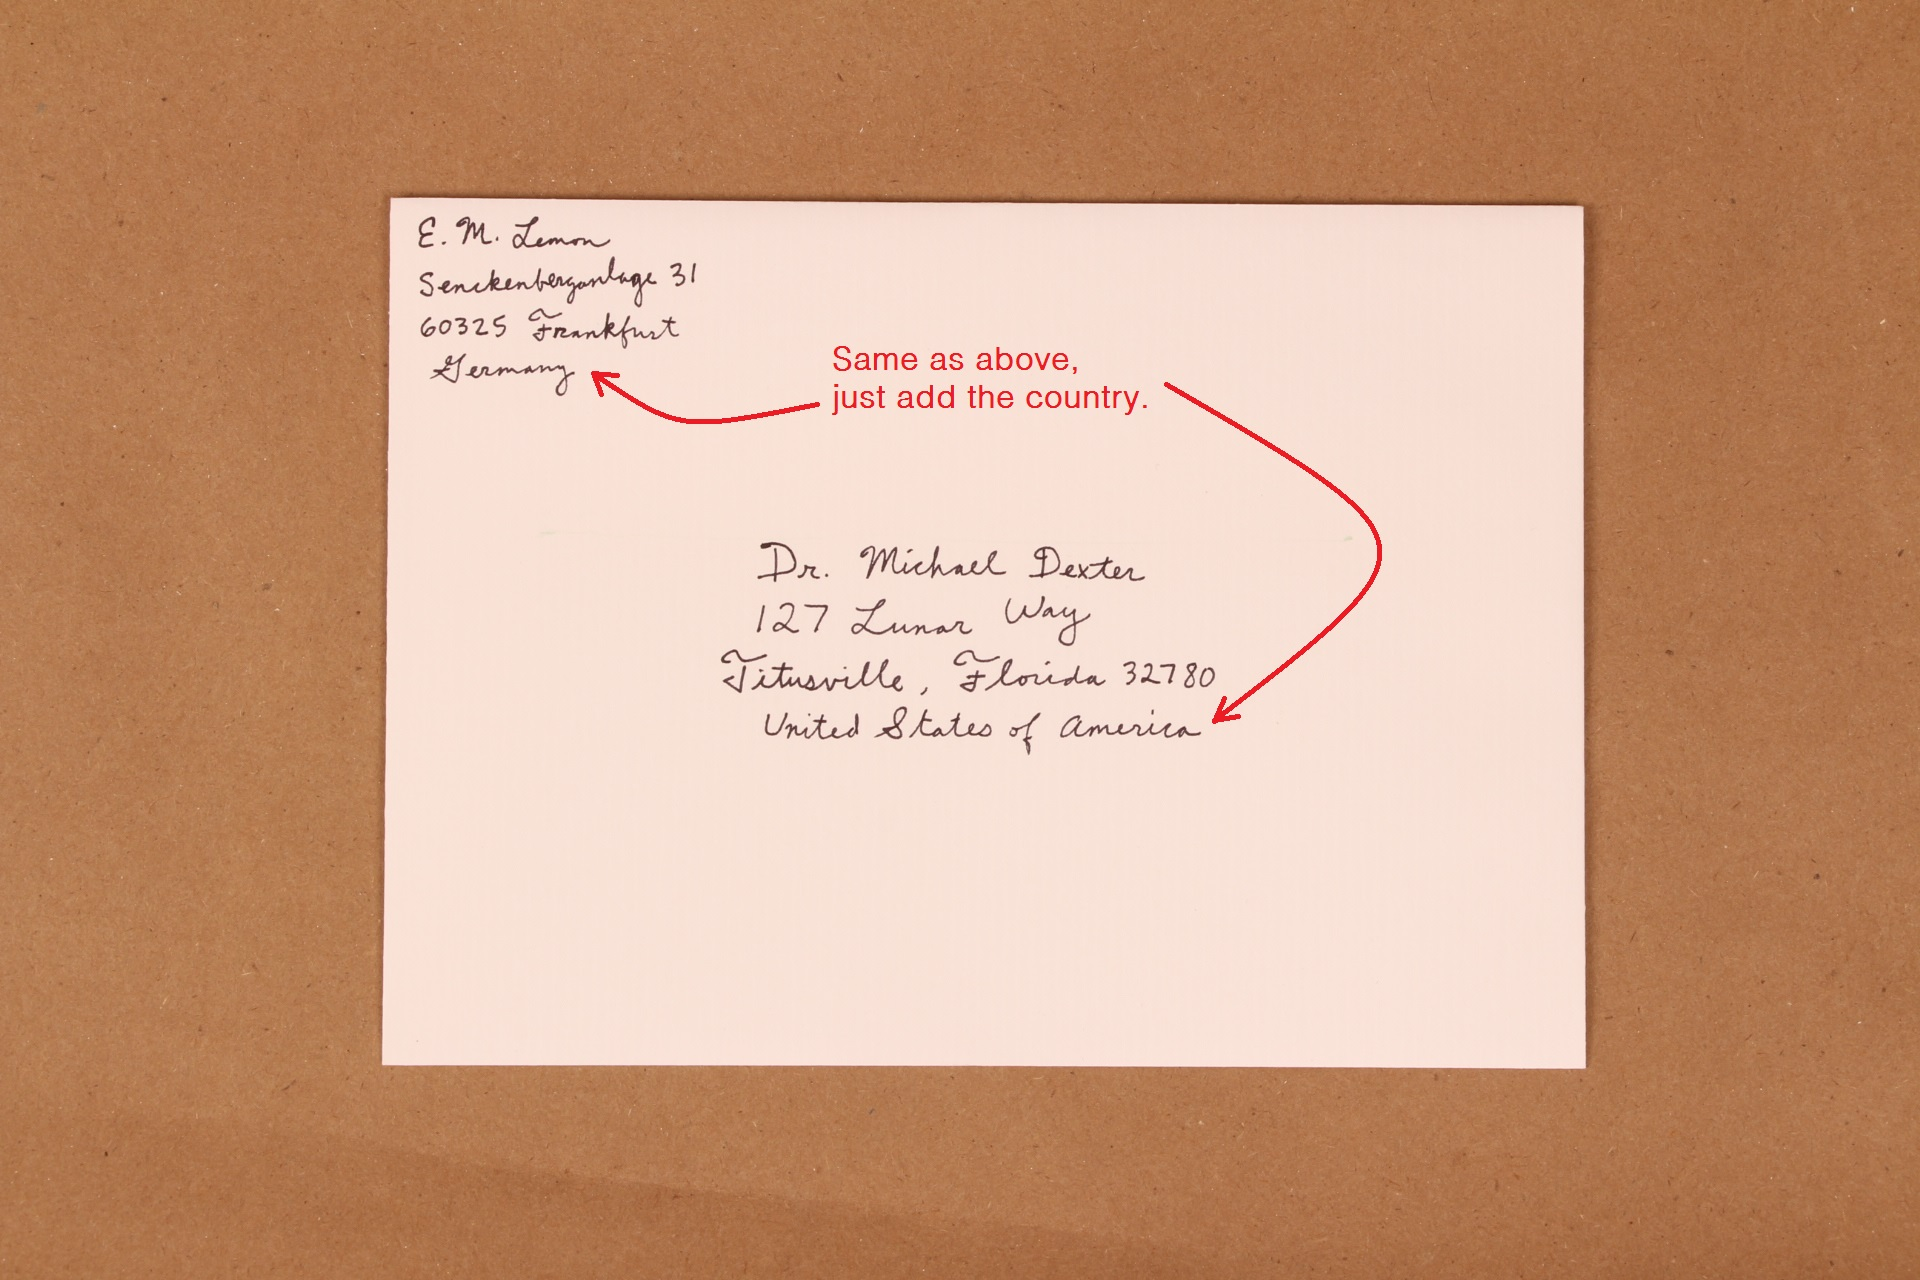 Sample Envelope with Attn